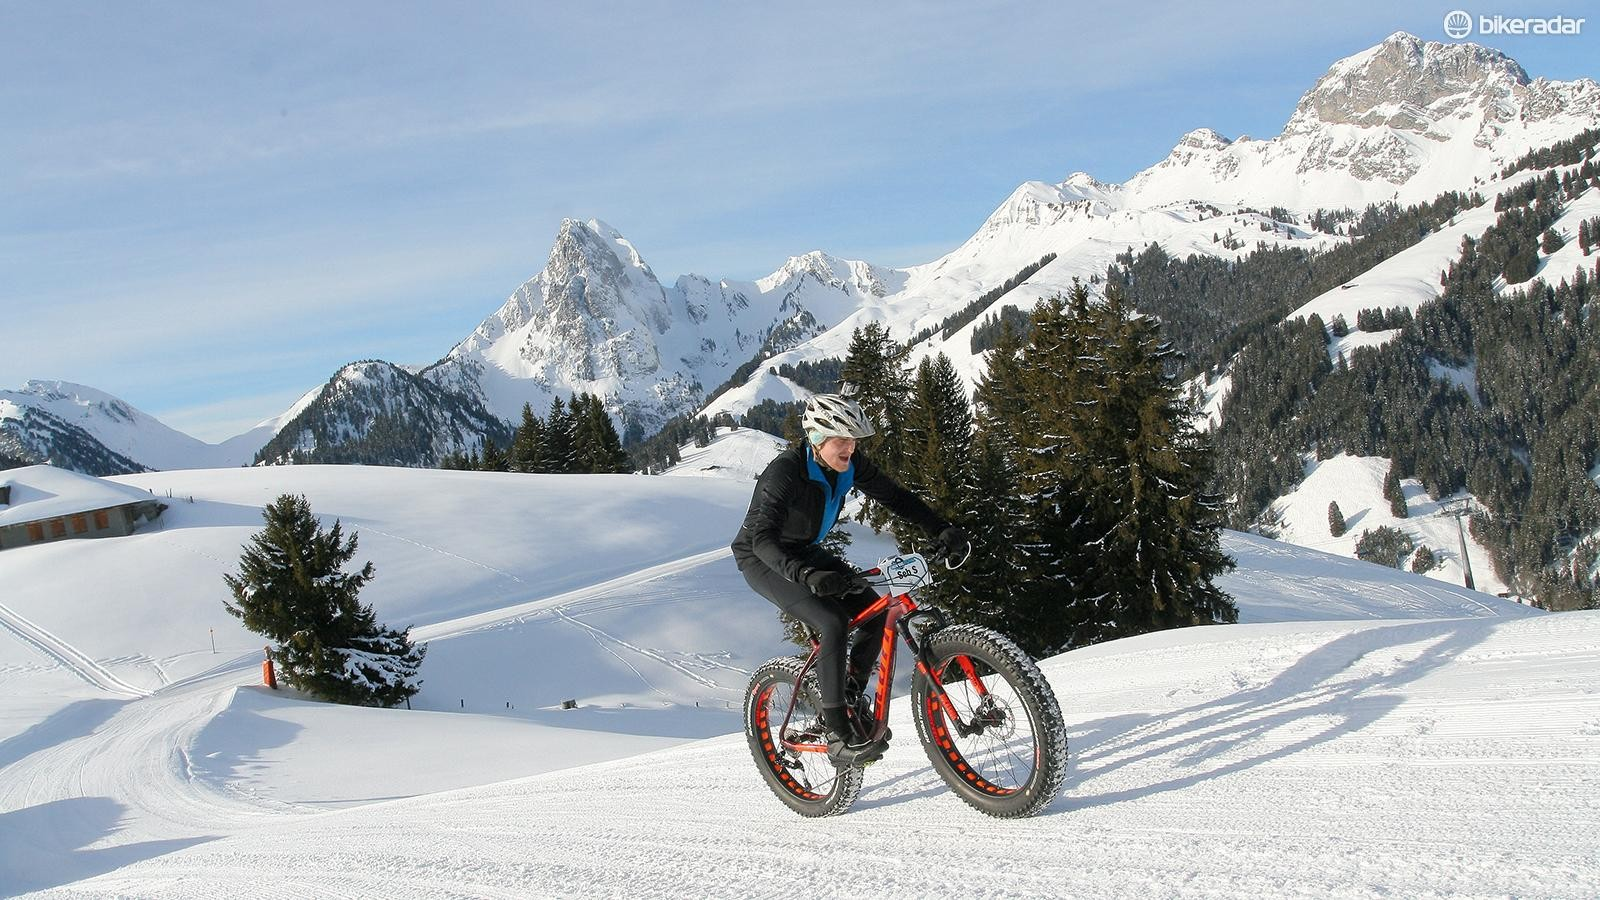 Climbing on slippery ground, it was necessary to knock the saddle back to improve rear-wheel traction